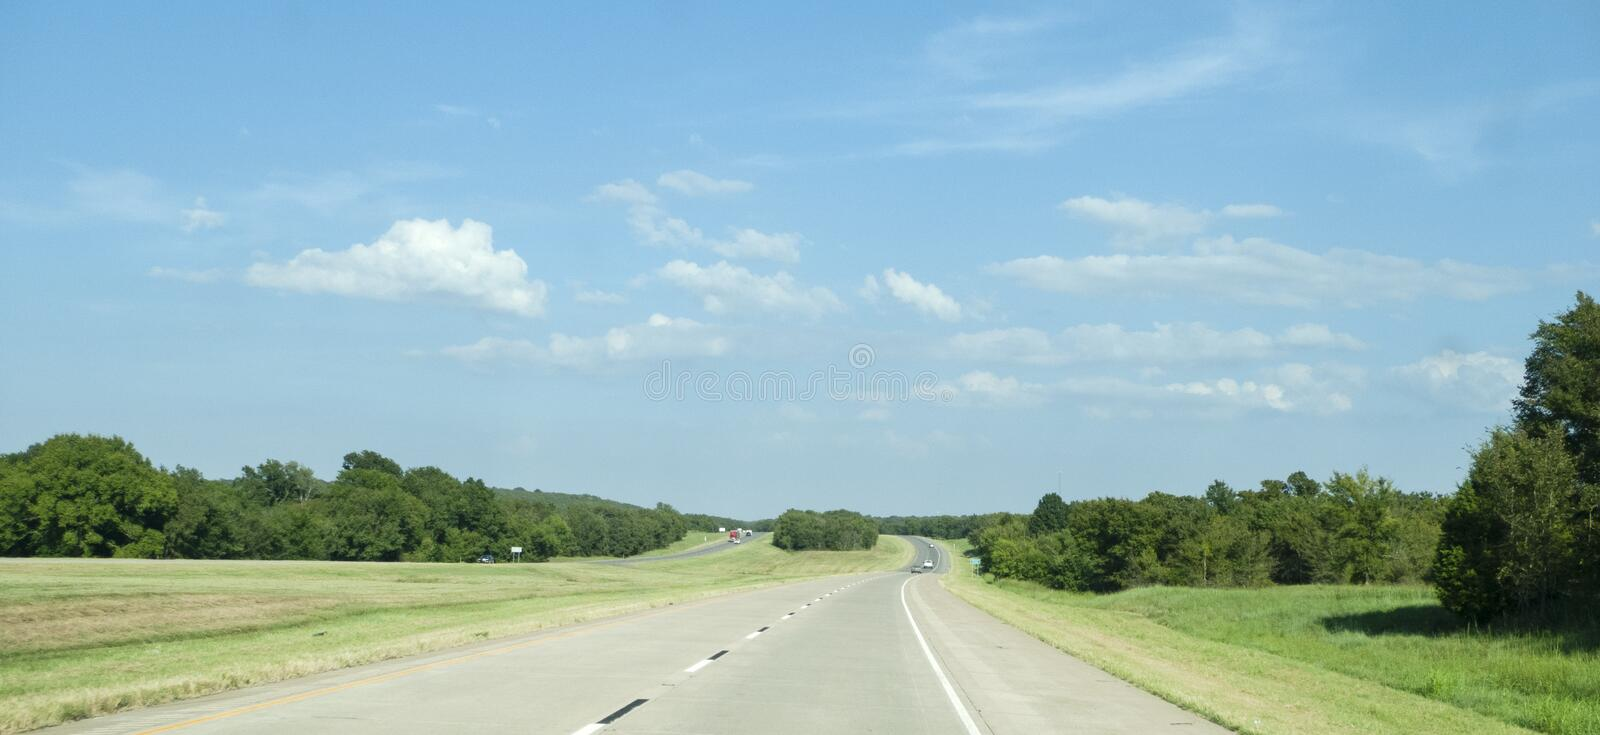 Eastern Oklahoma summer landscape with four lane highway stock images